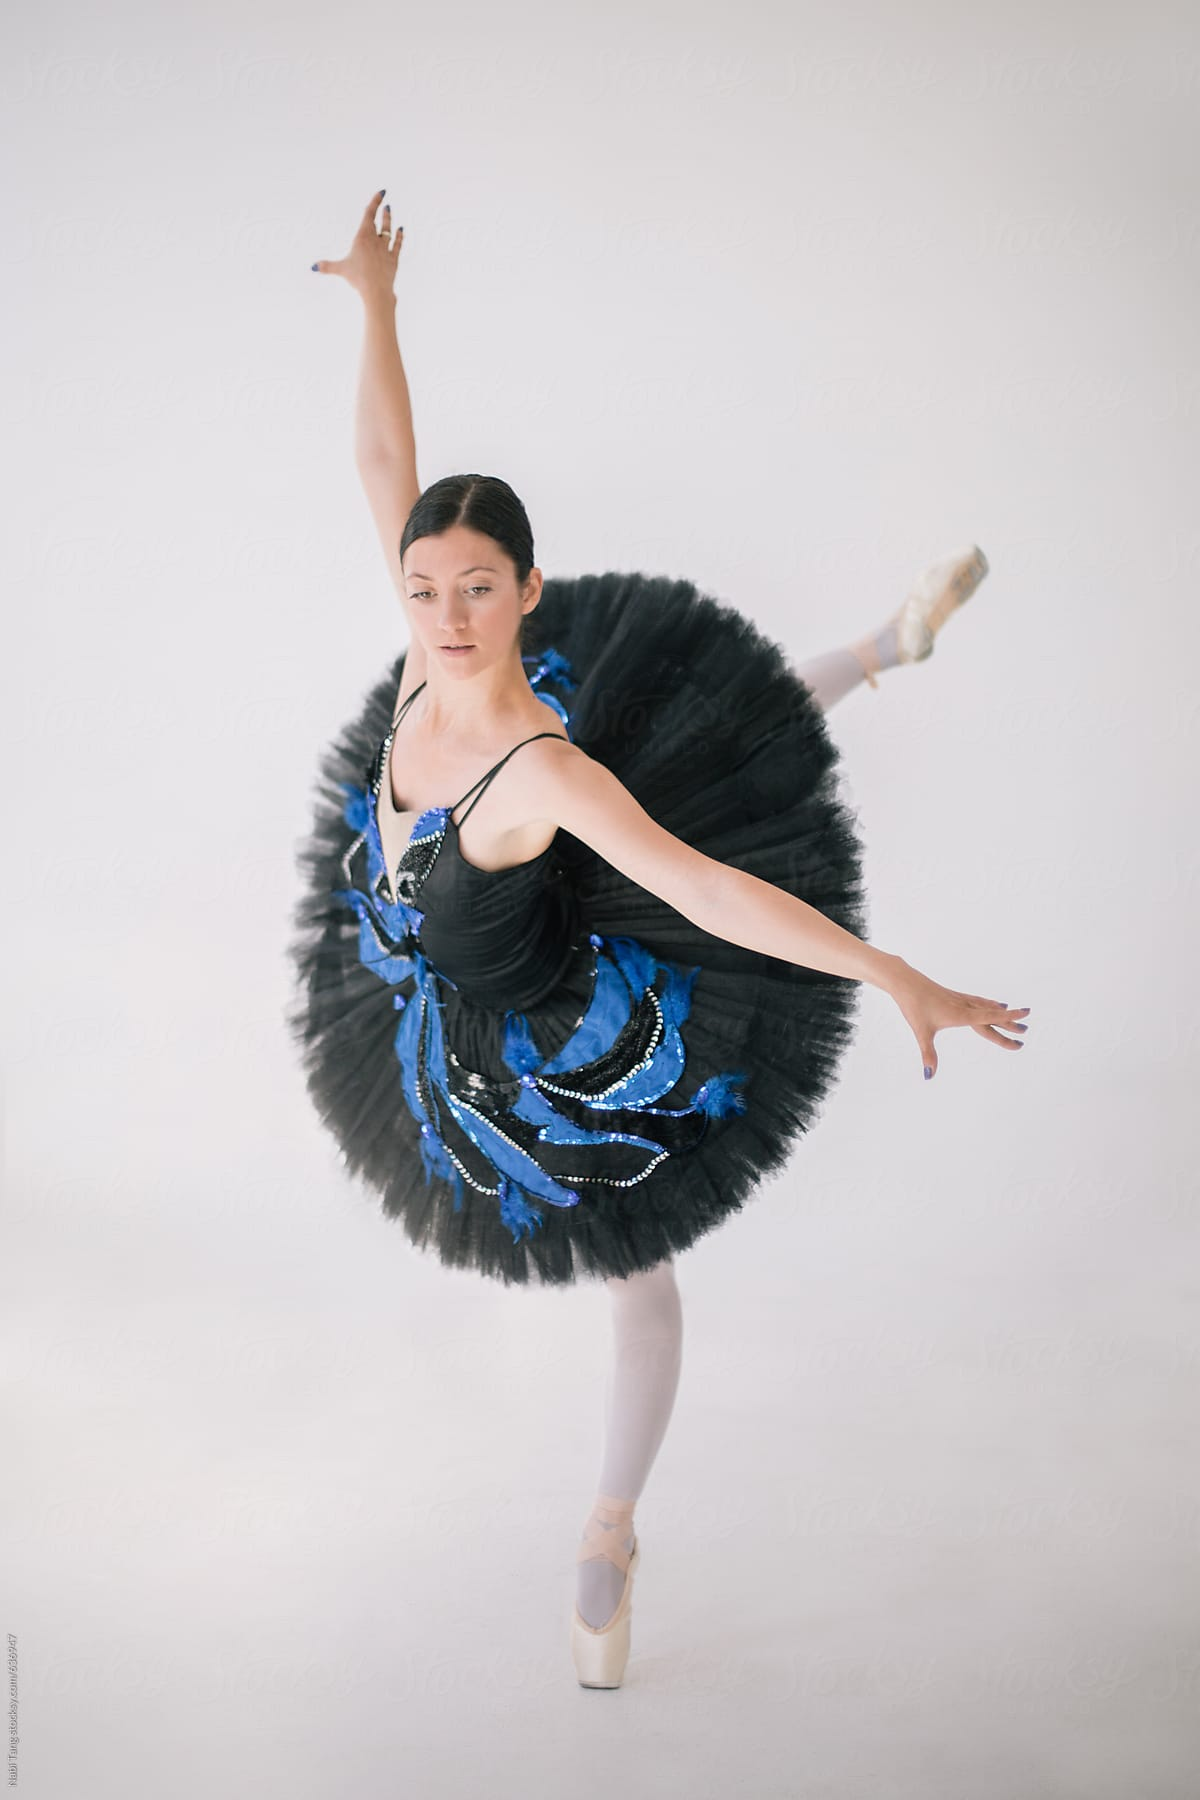 Beautiful Ballerina In Black Costume Dancing In The White Clean Space By Nabi Tang Stocksy United